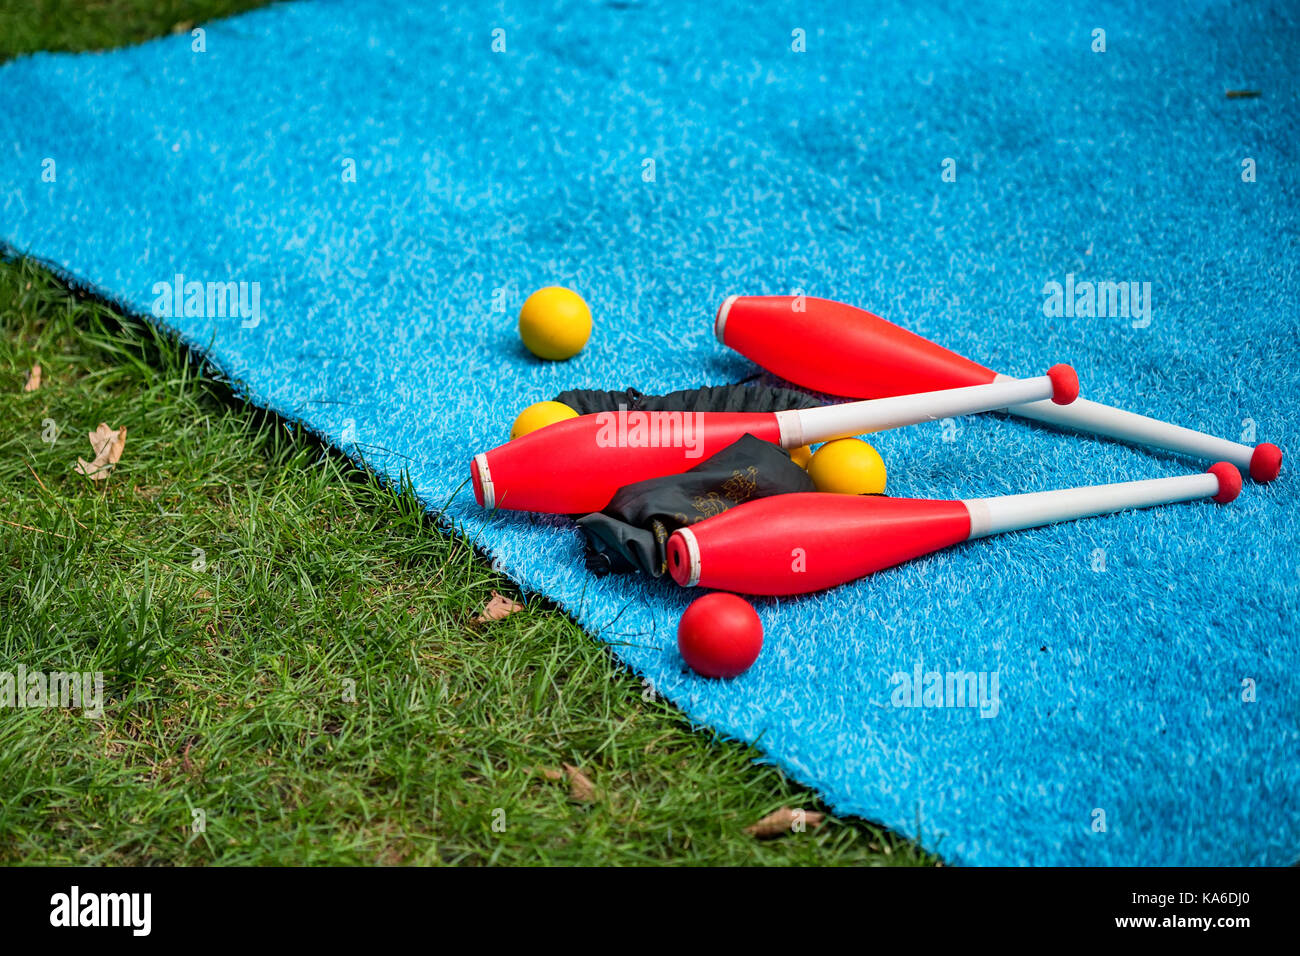 Juggling clubs and balls on lie blue mat close-up - Stock Image